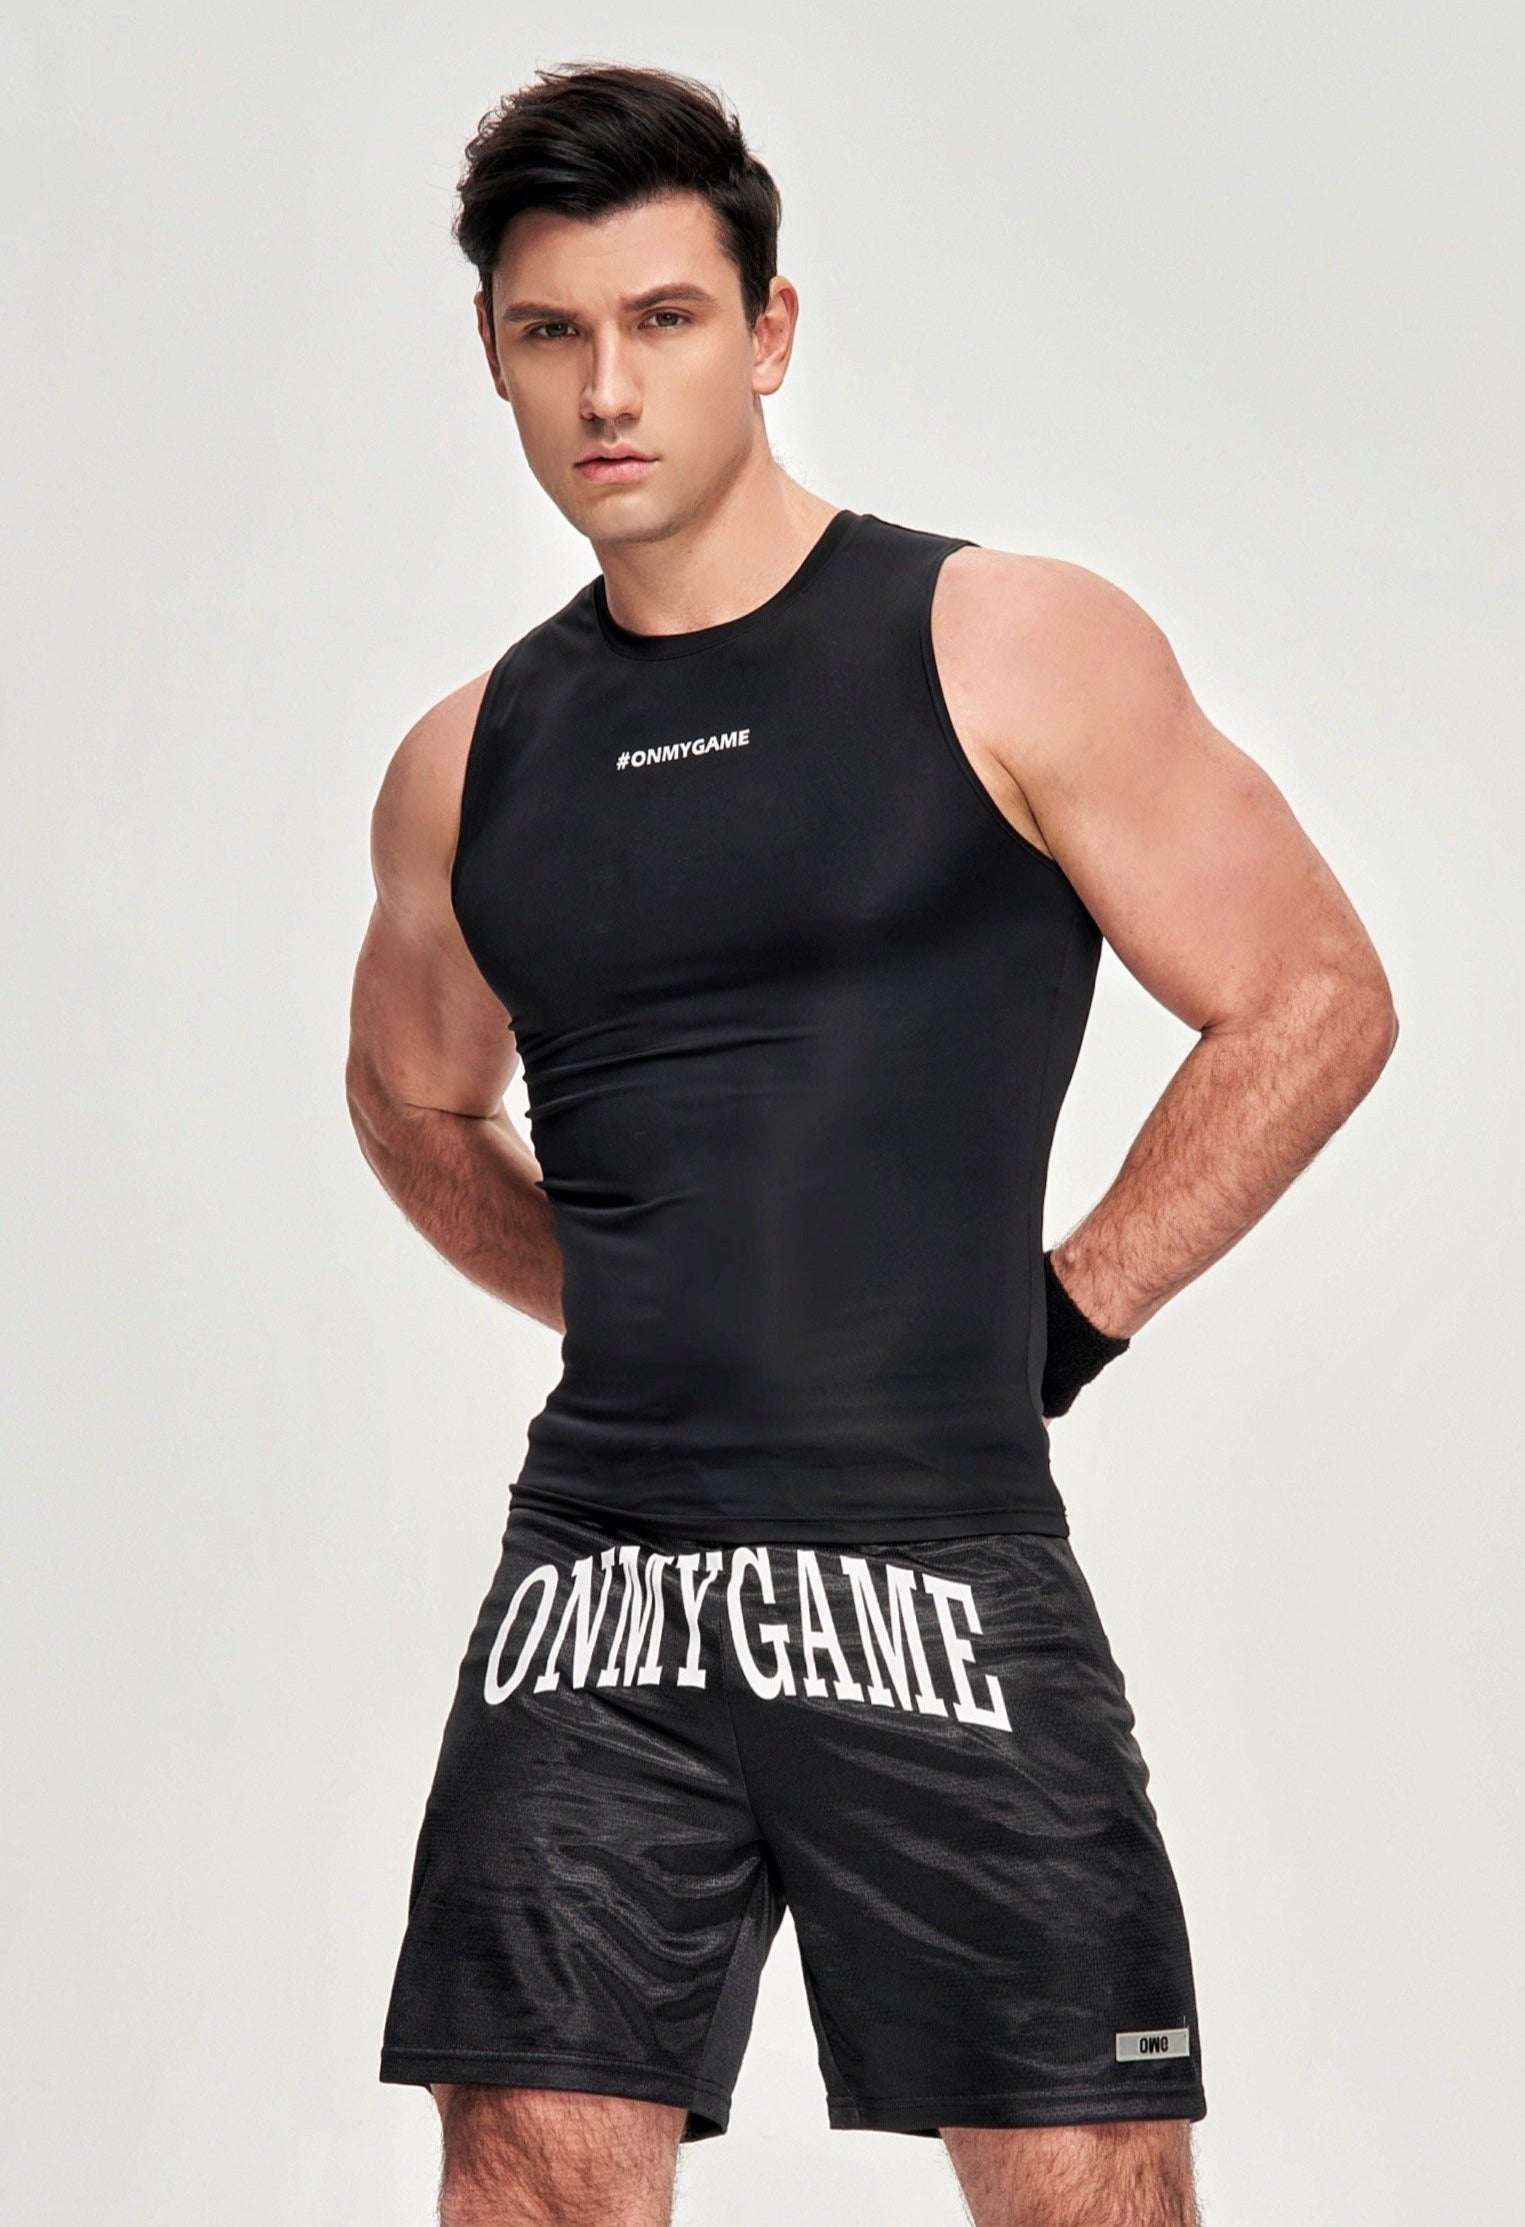 OMG® Finish Line Sleeveless